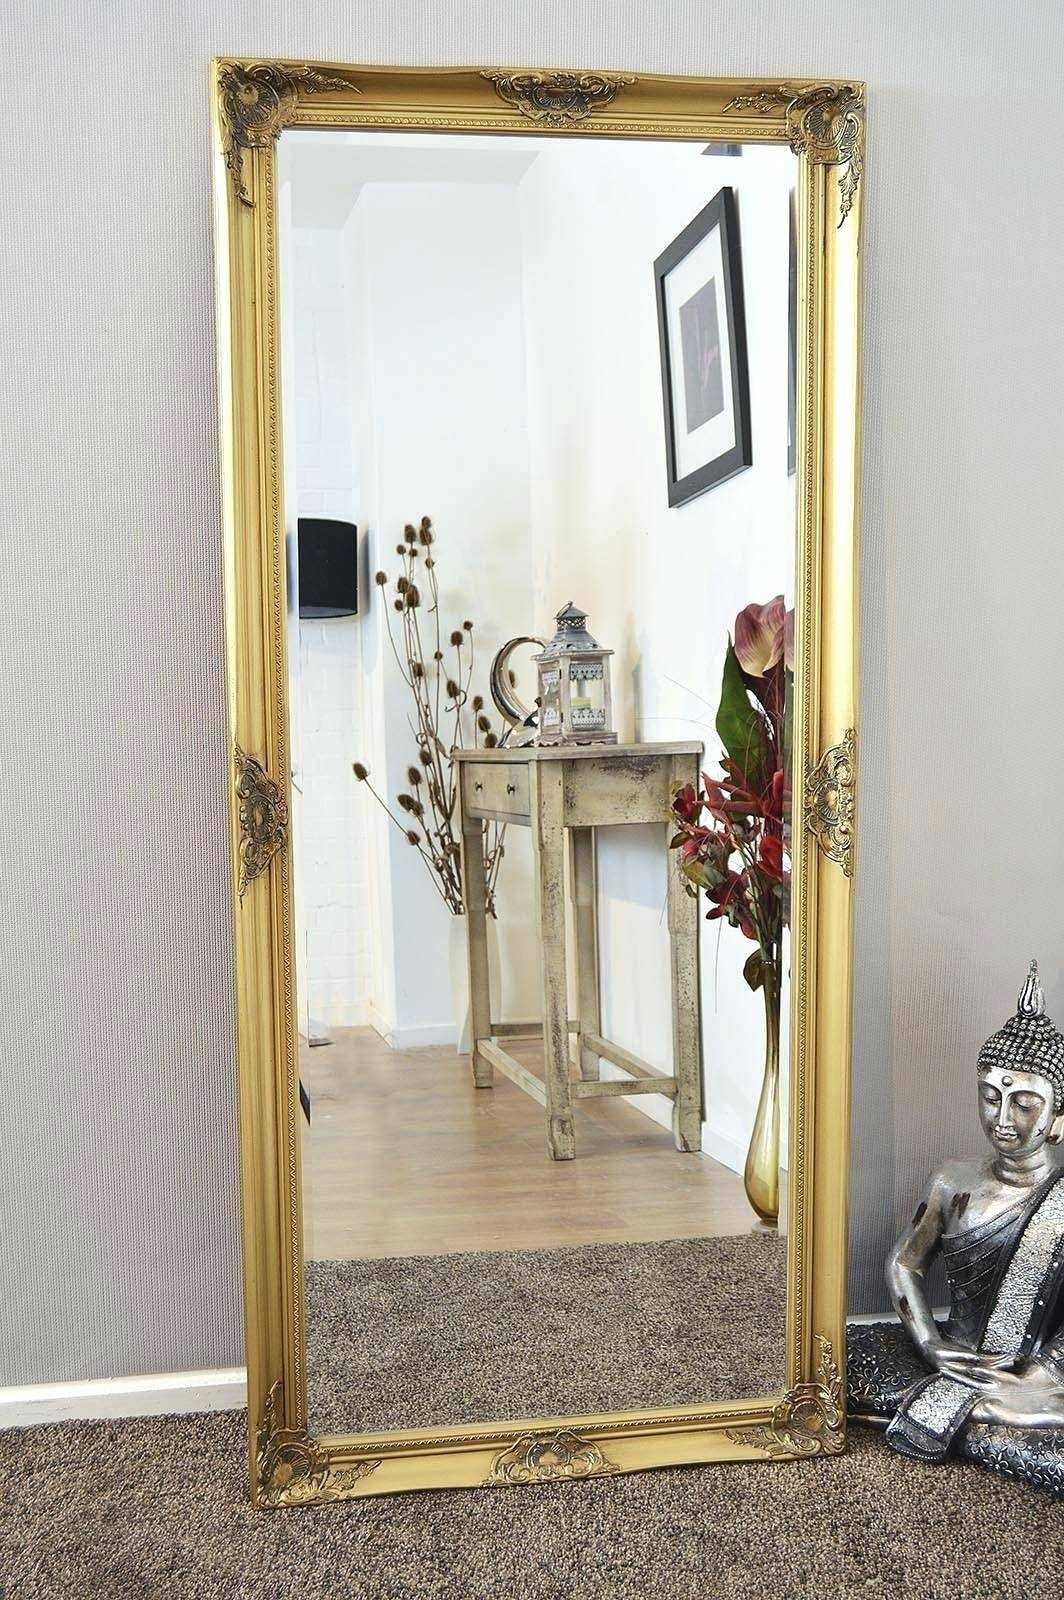 Floor Mirror Large Mirrors Extra Mosaic Vanity Ornate Standing Big throughout Extra Large Floor Standing Mirrors (Image 5 of 15)